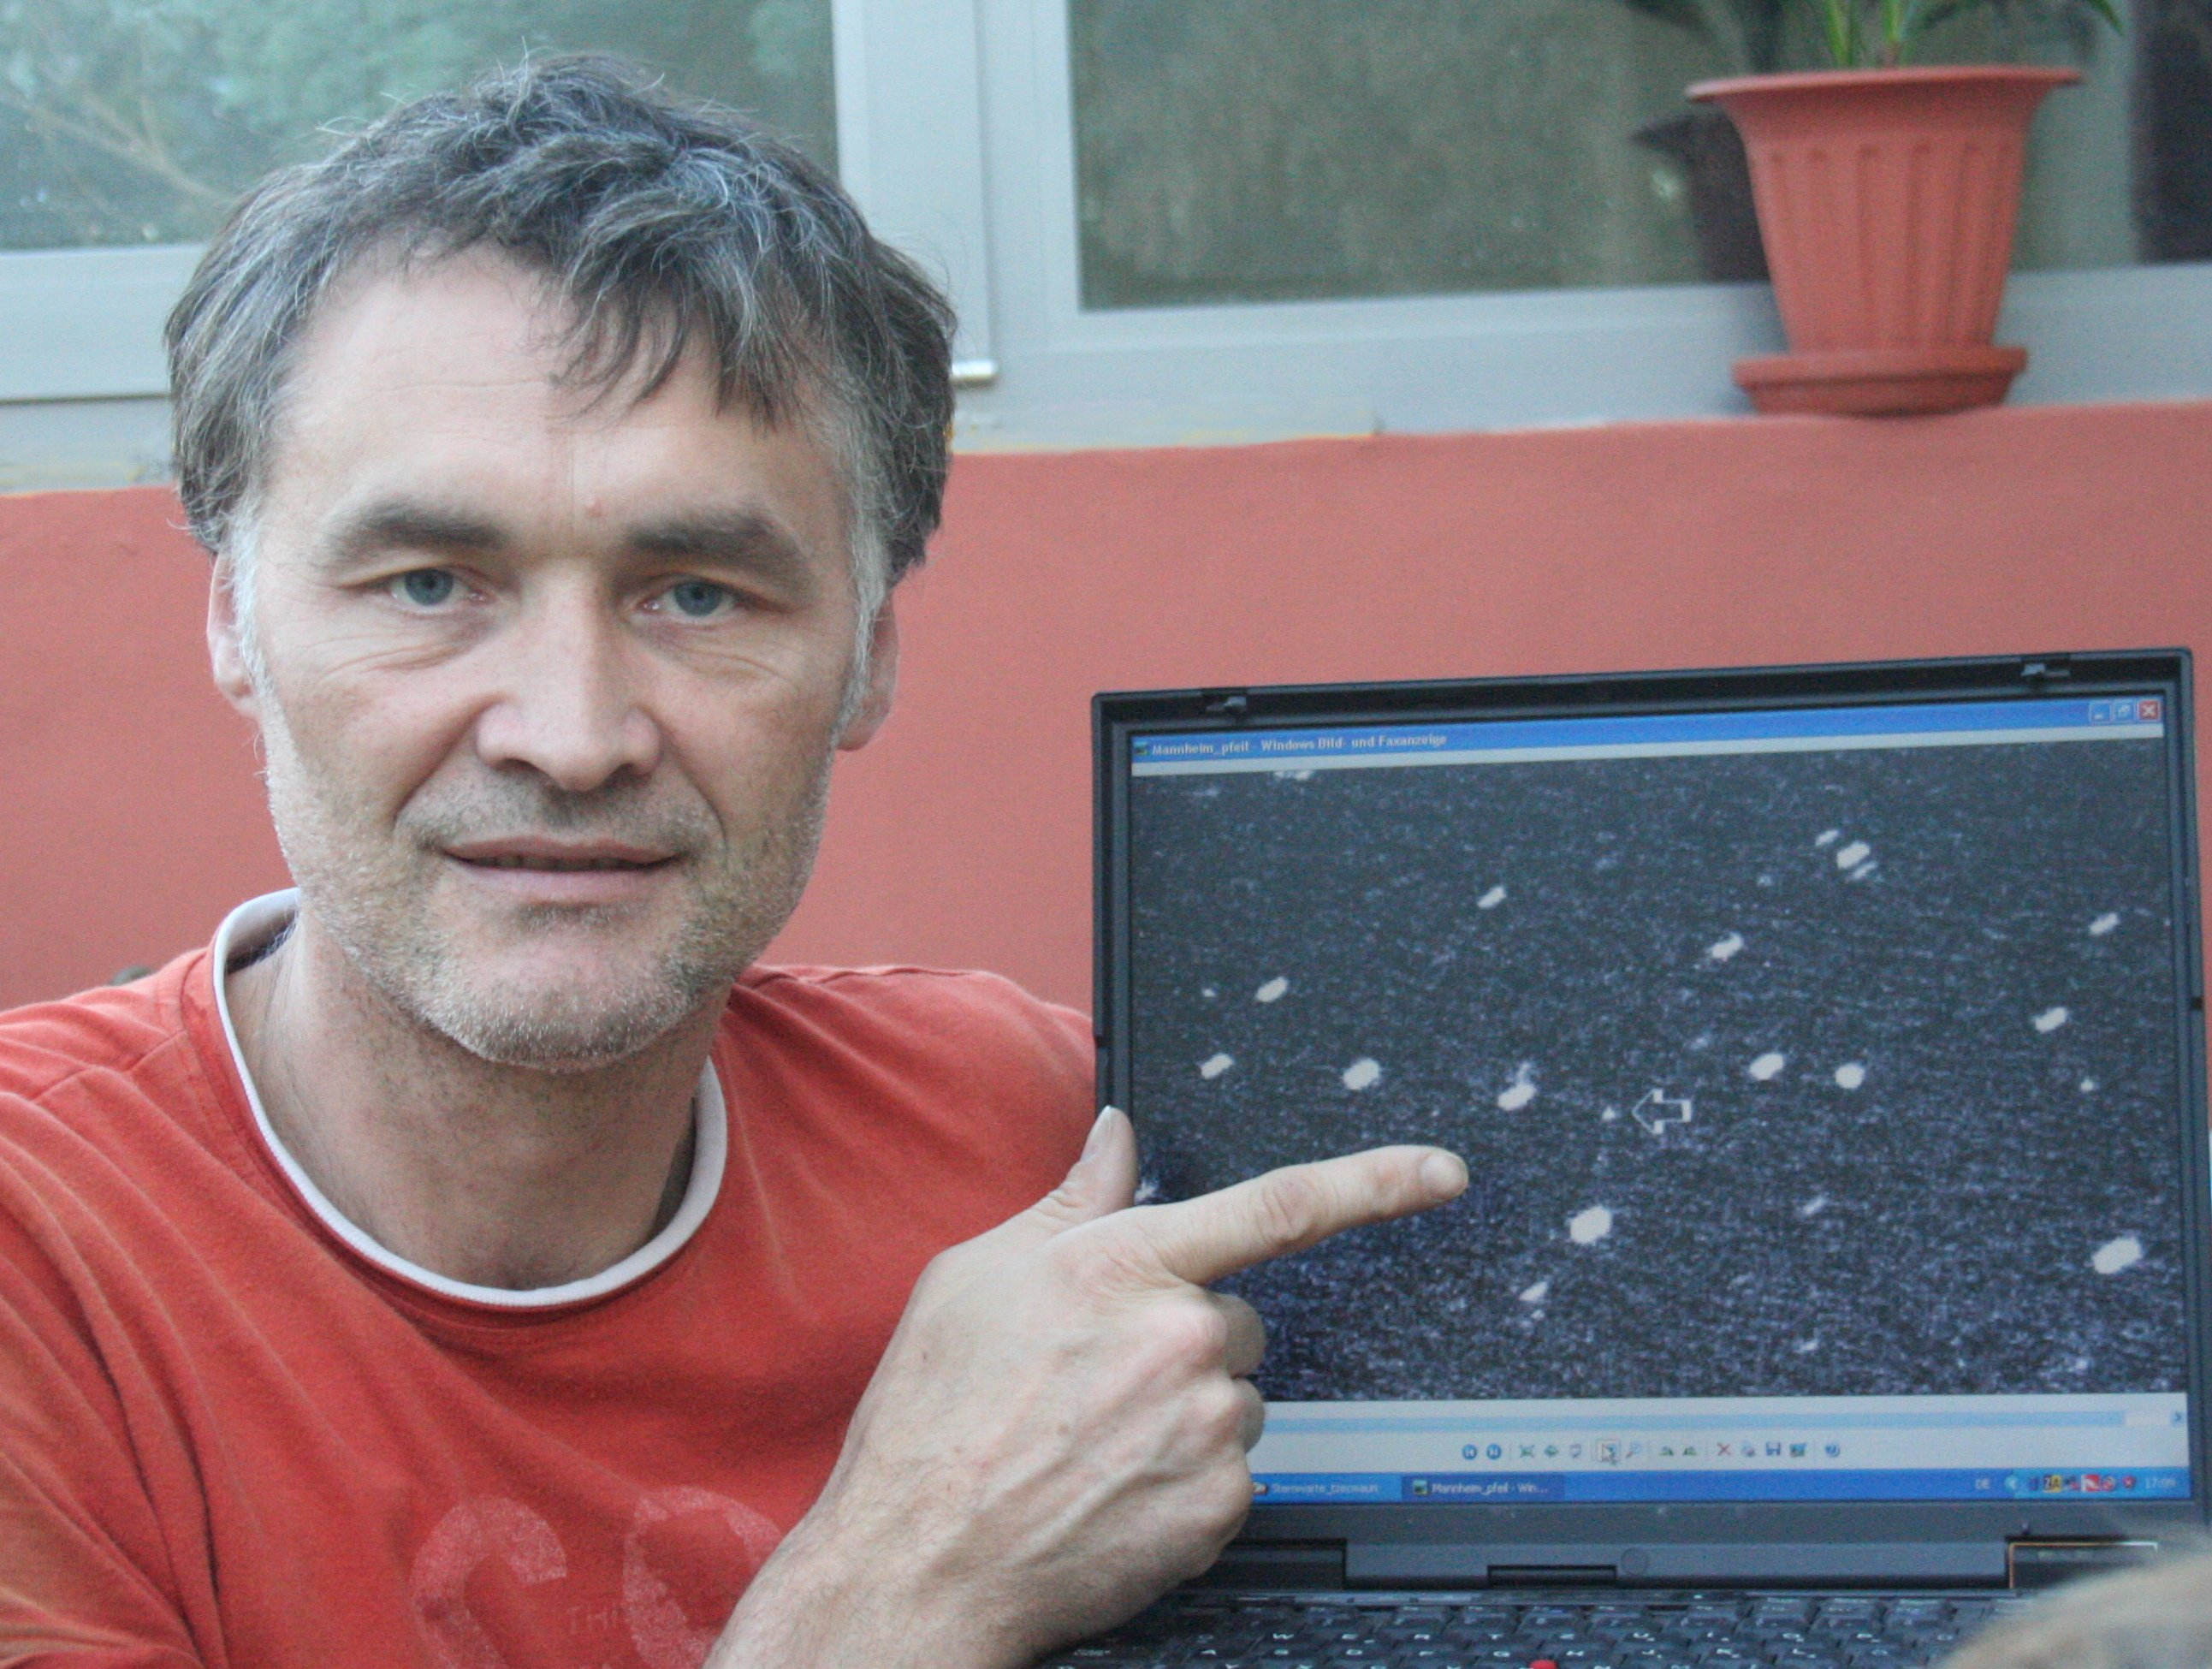 The discoverer with Laptop at his hometown Egelsbach